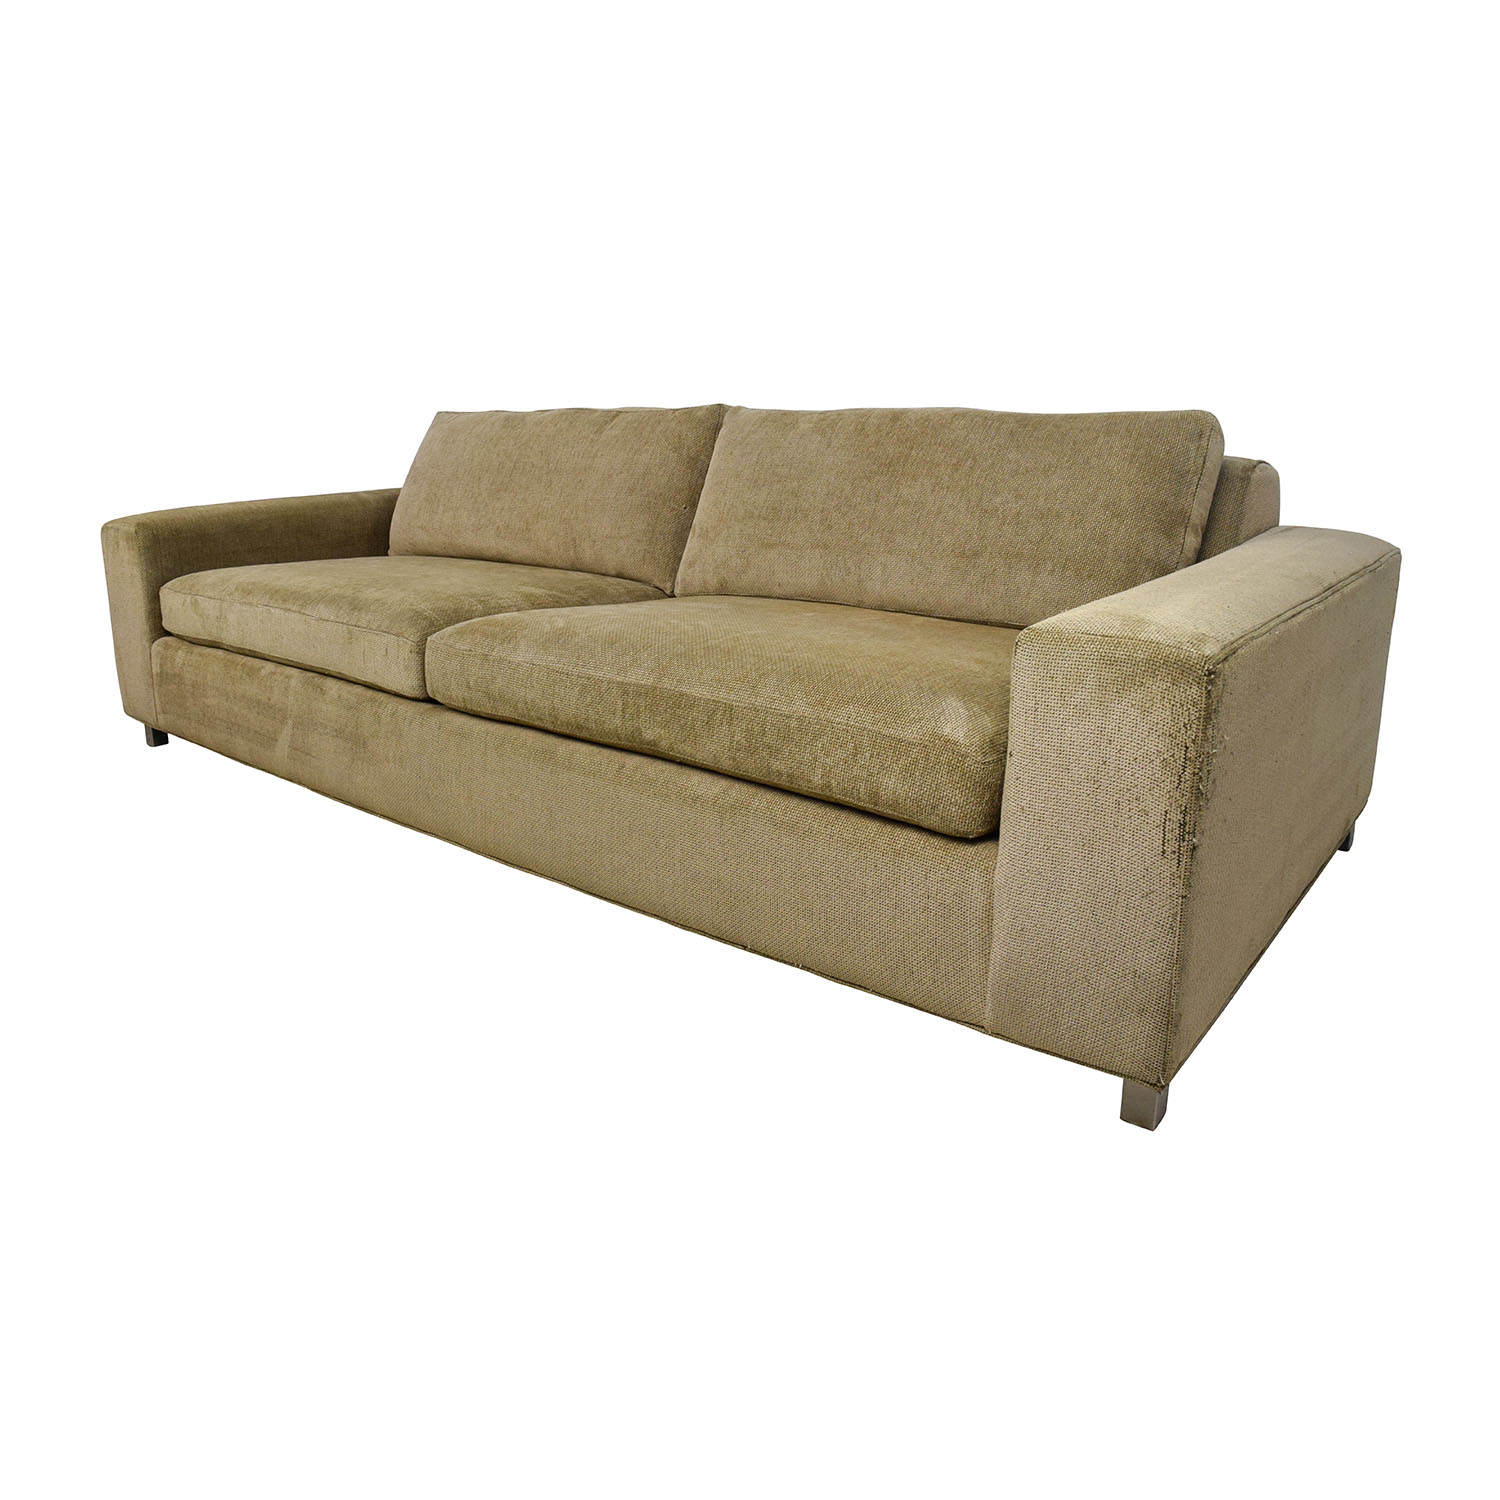 room and board sectional sofa bed sure fit stretch pique three piece slipcover 89 off gold tan fabric